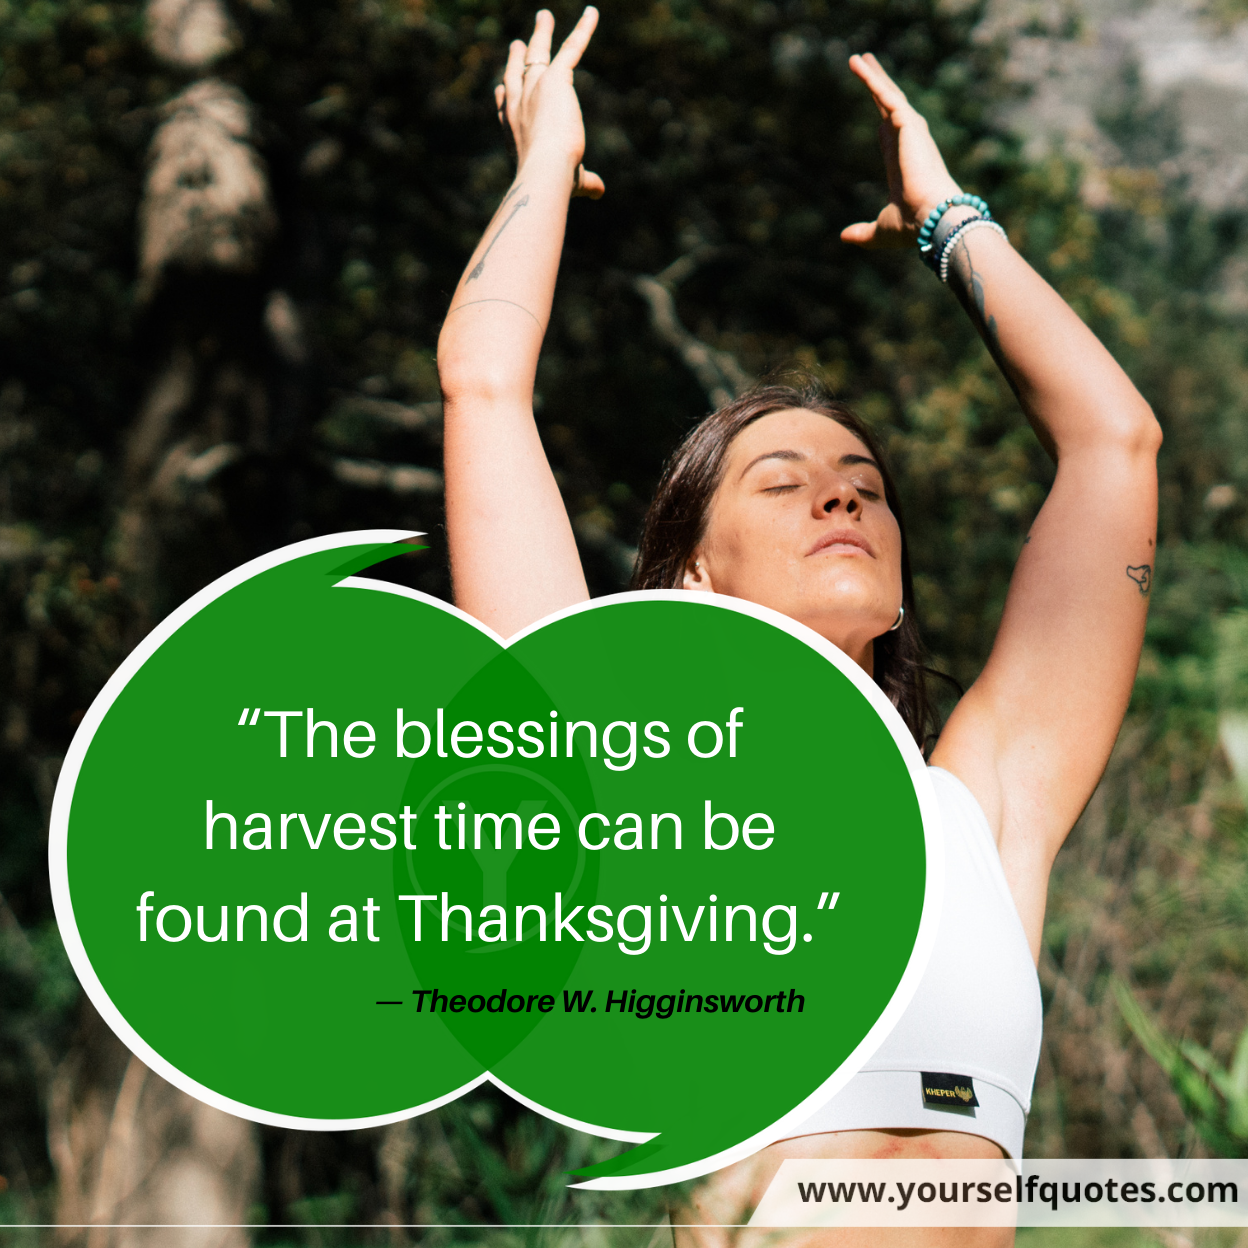 thanksgiving quotes by theodore w. higginsworth.png